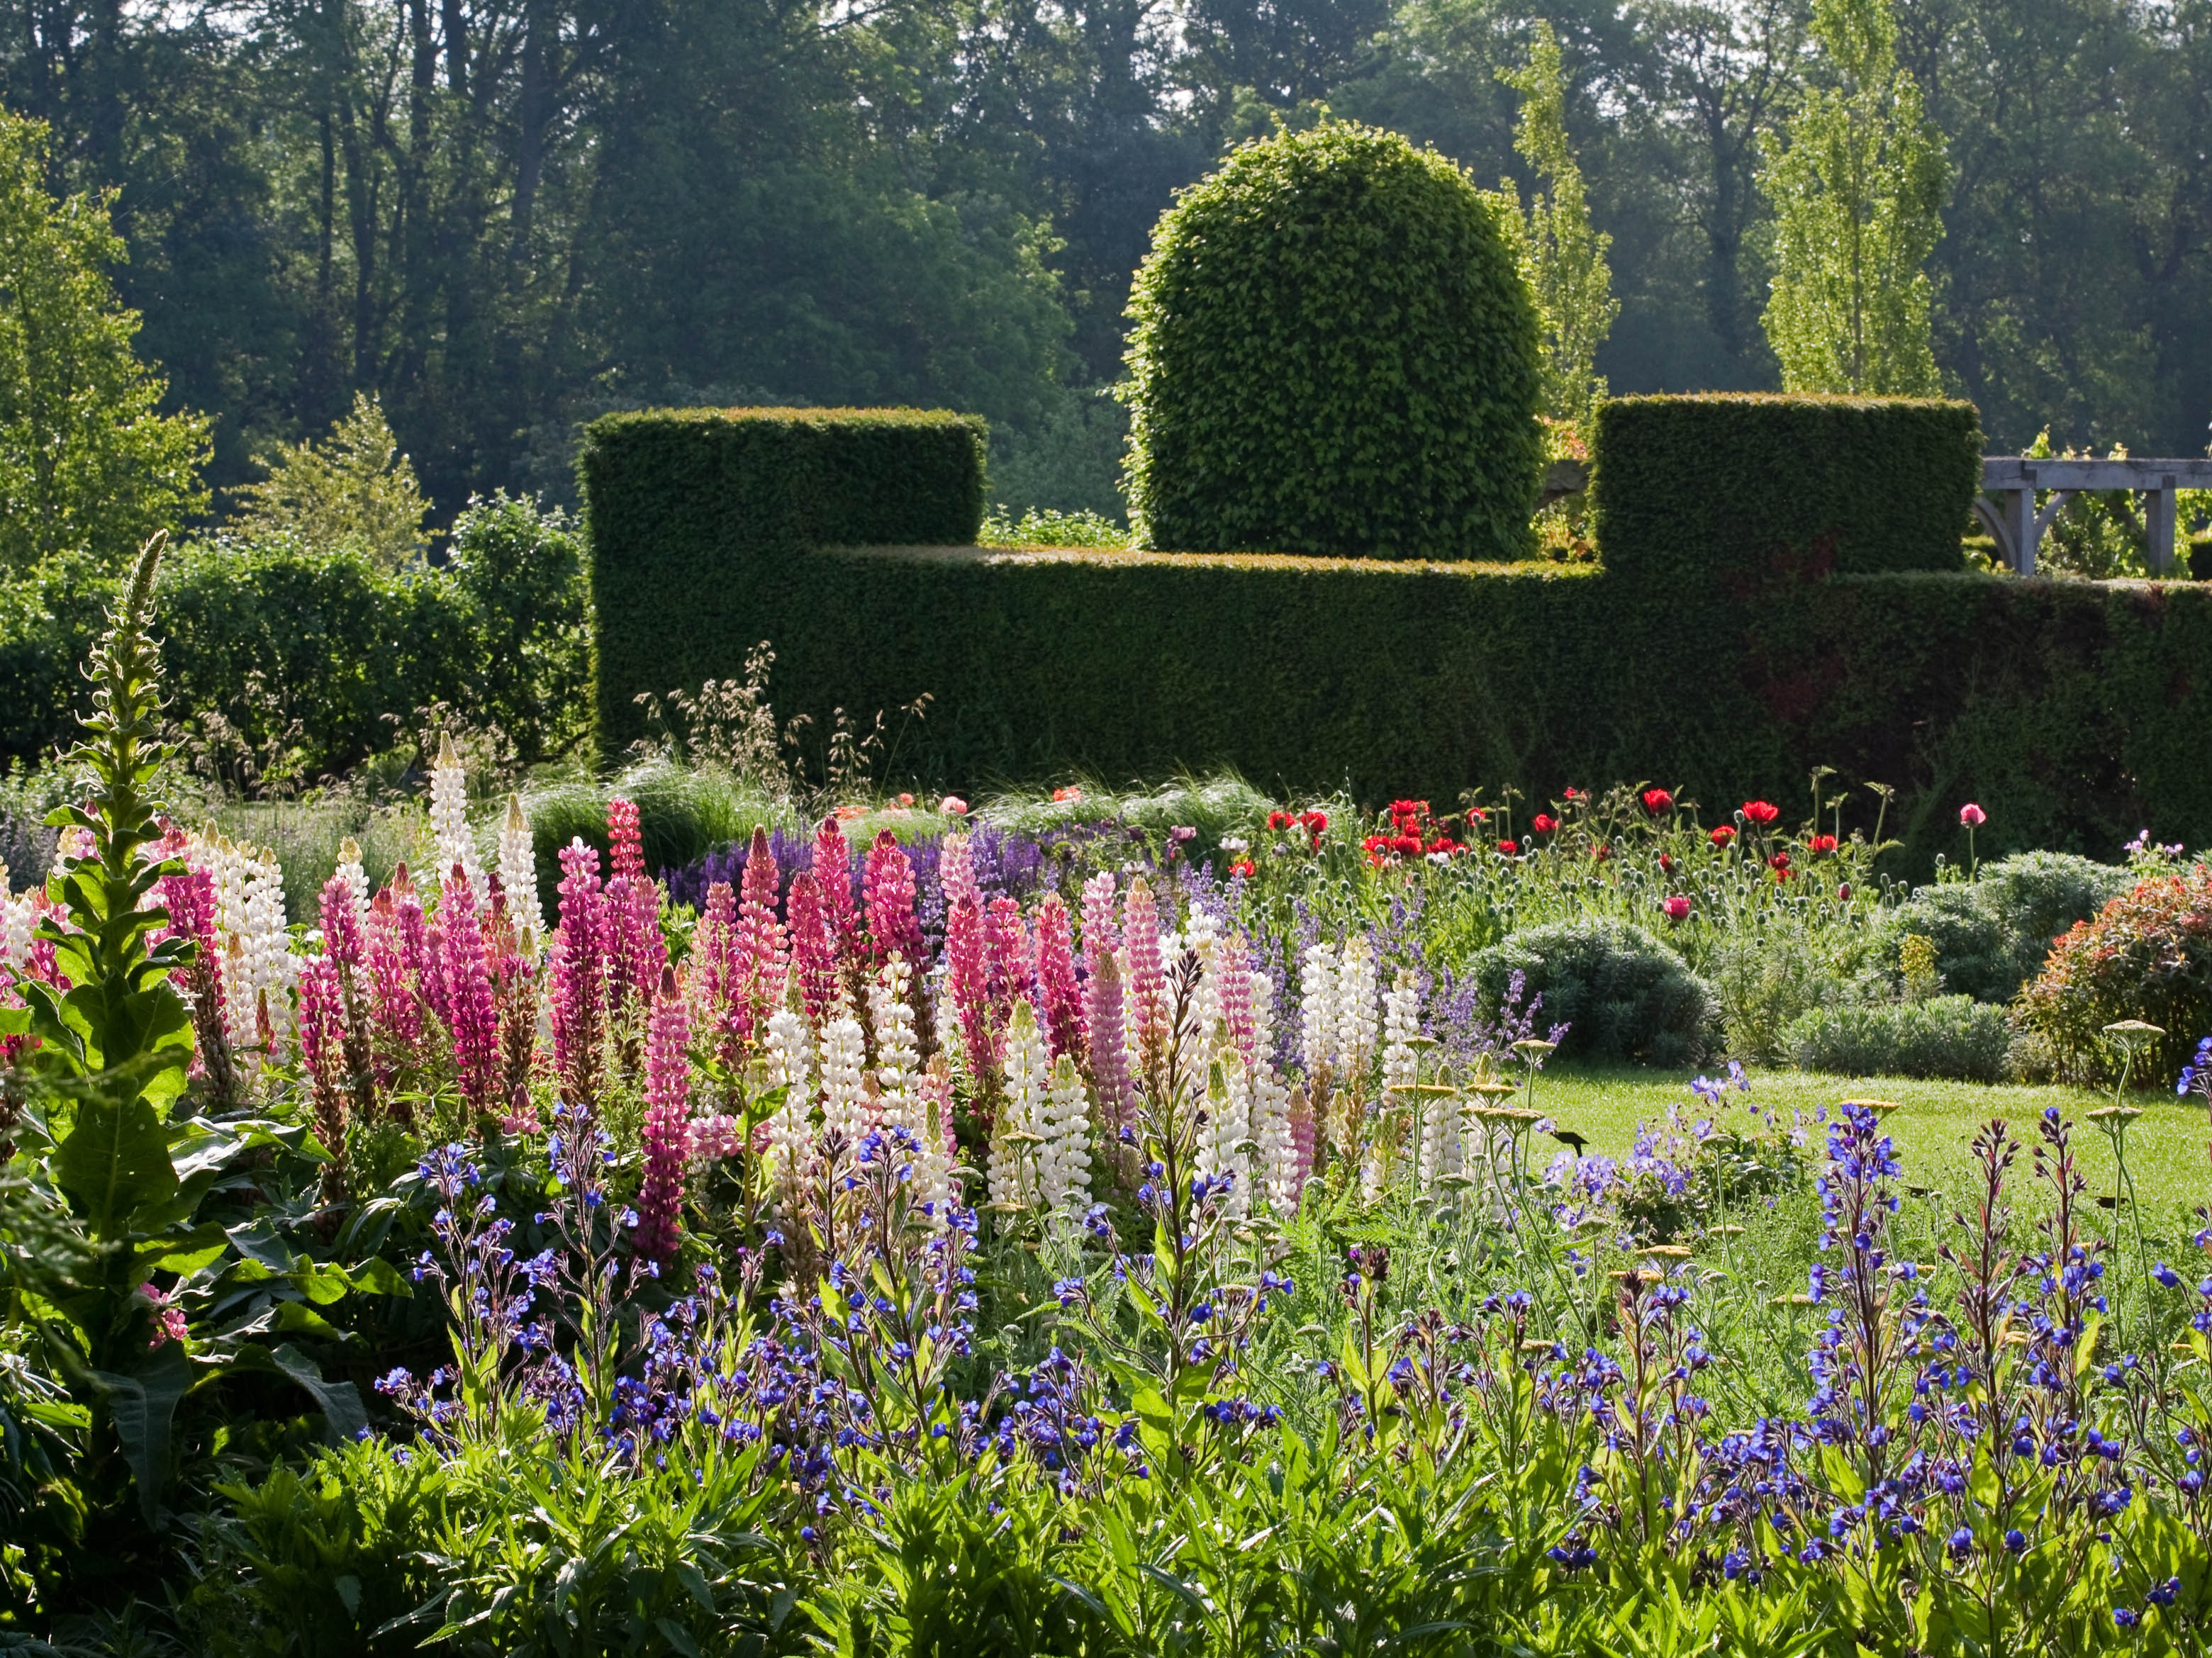 Waterperry Gardens Image 2014 4 x 3.jpg